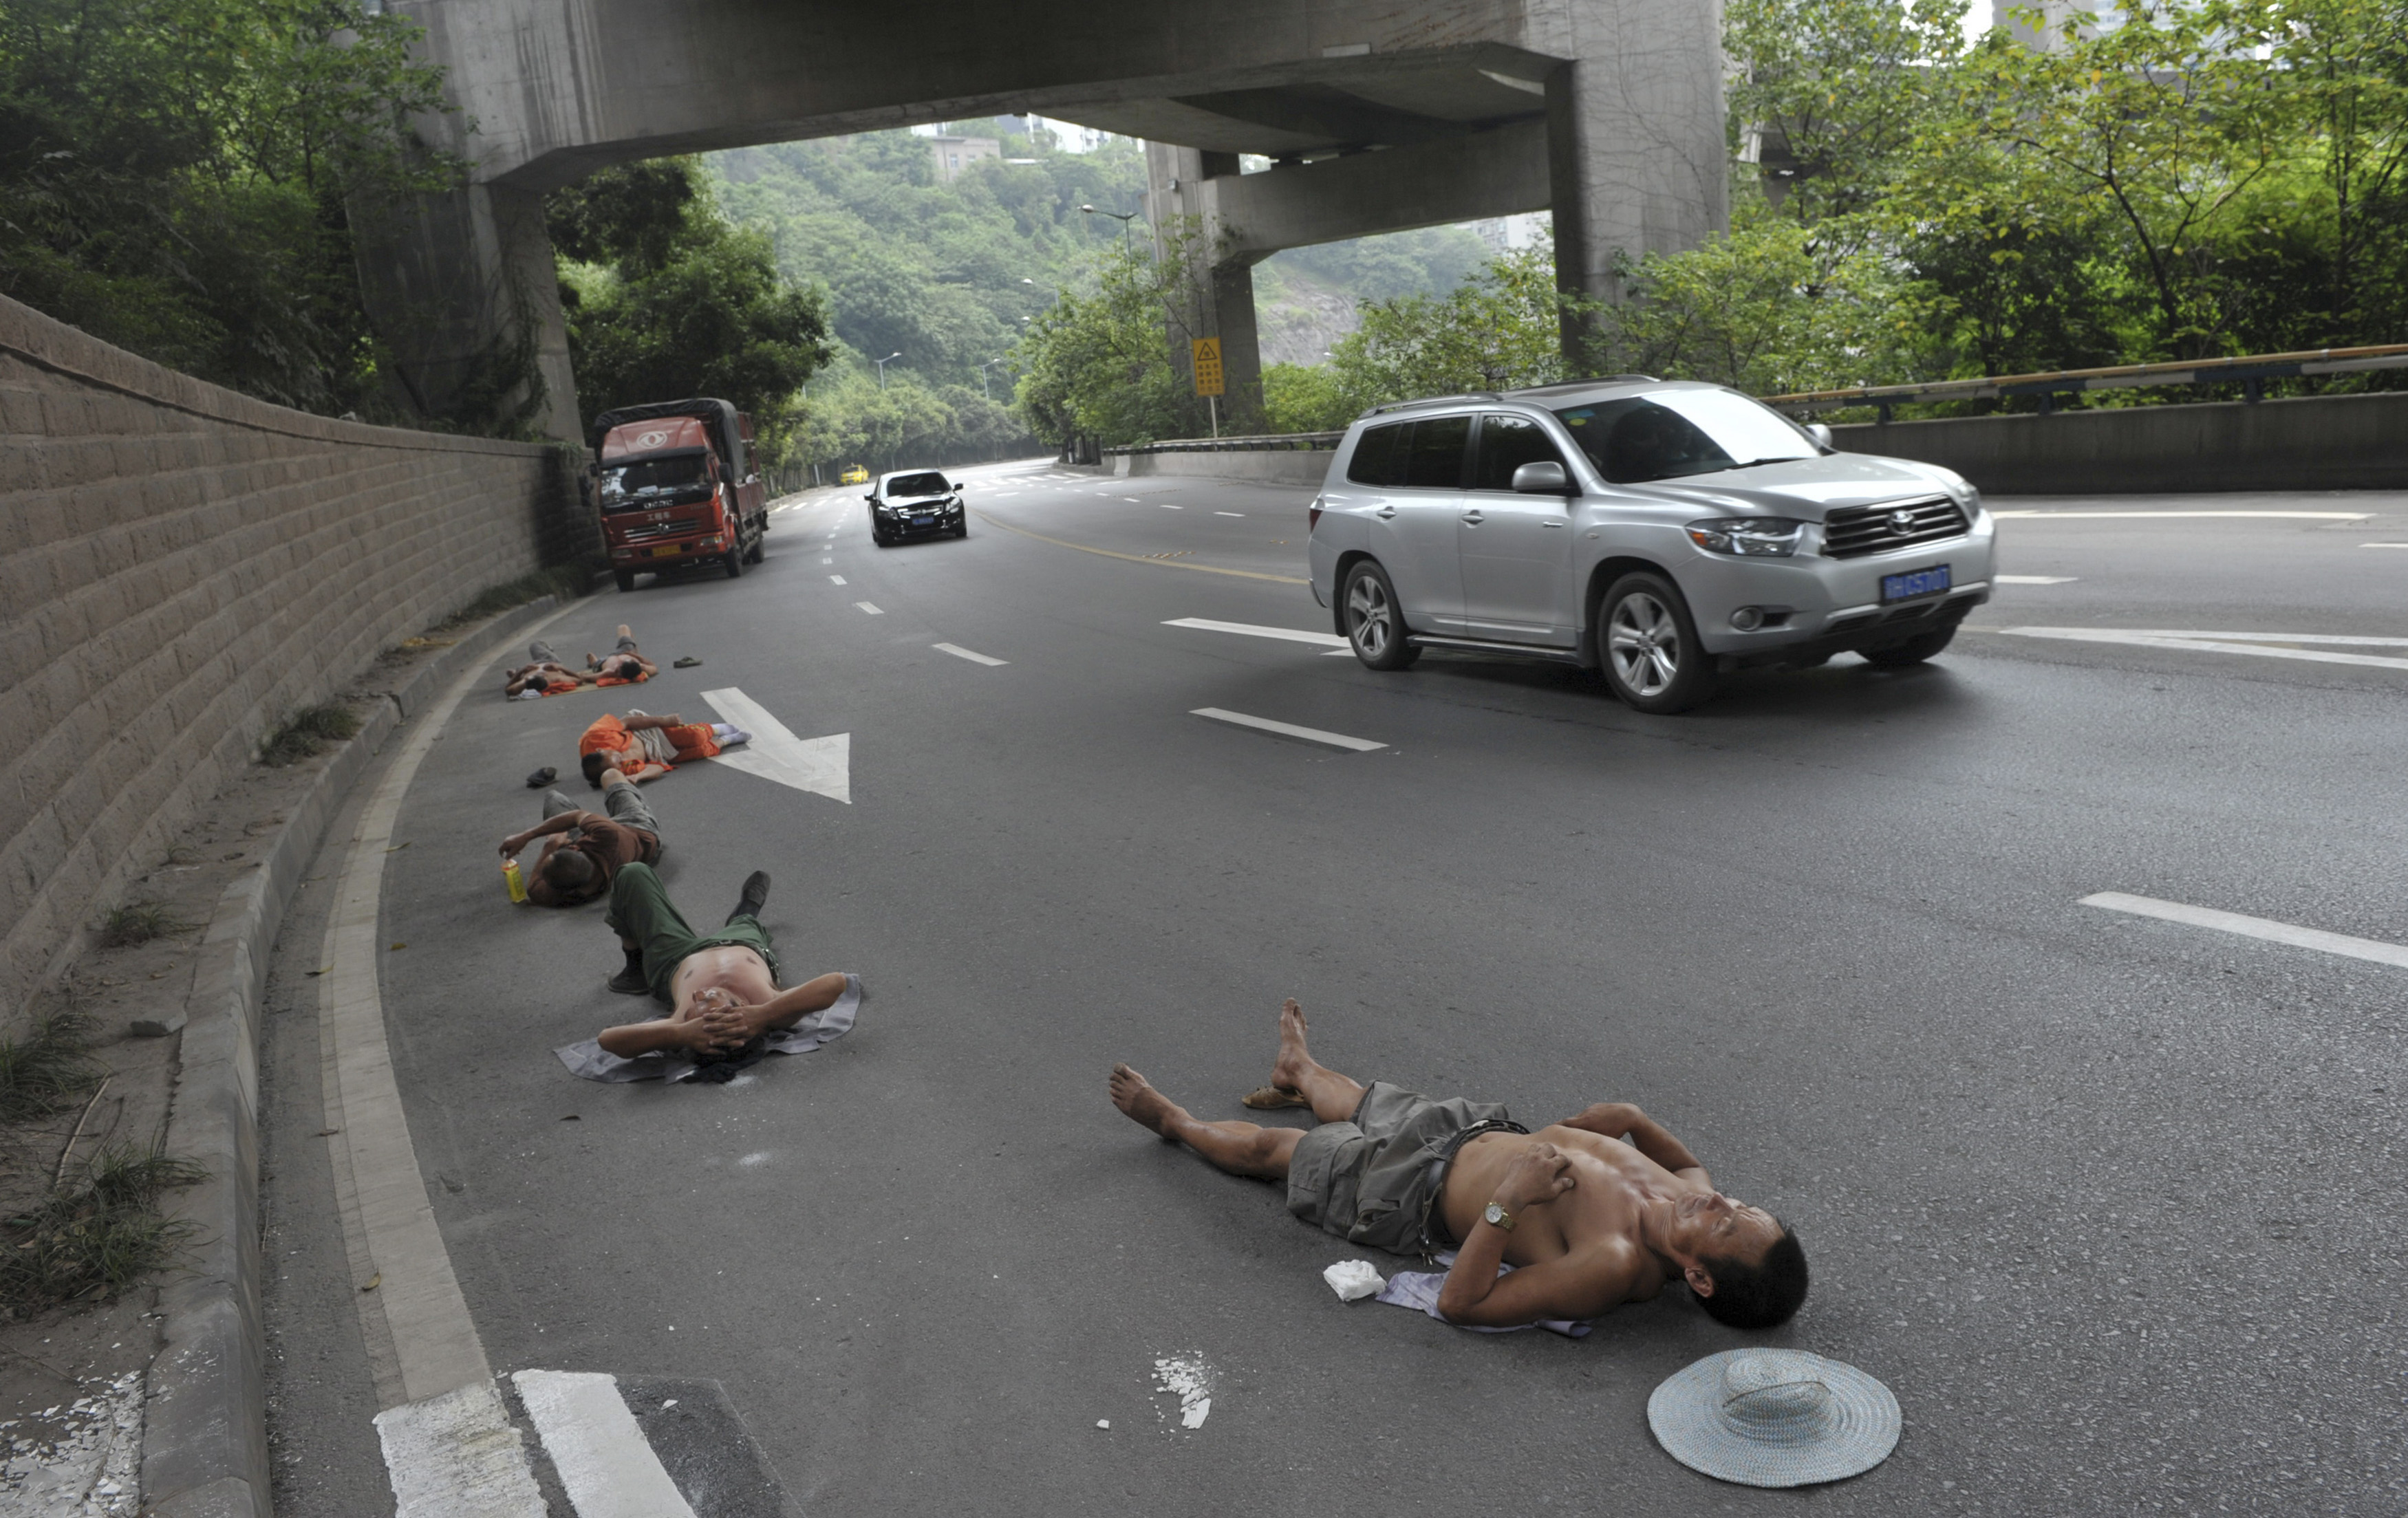 Labourers who work nearby nap on a road as cars drive past in Chongqing Municipality, July 23, 2013. Picture taken July 23, 2013. REUTERS/Stringer (CHINA - Tags: SOCIETY TPX IMAGES OF THE DAY) CHINA OUT. NO COMMERCIAL OR EDITORIAL SALES IN CHINA - RTX11WRT